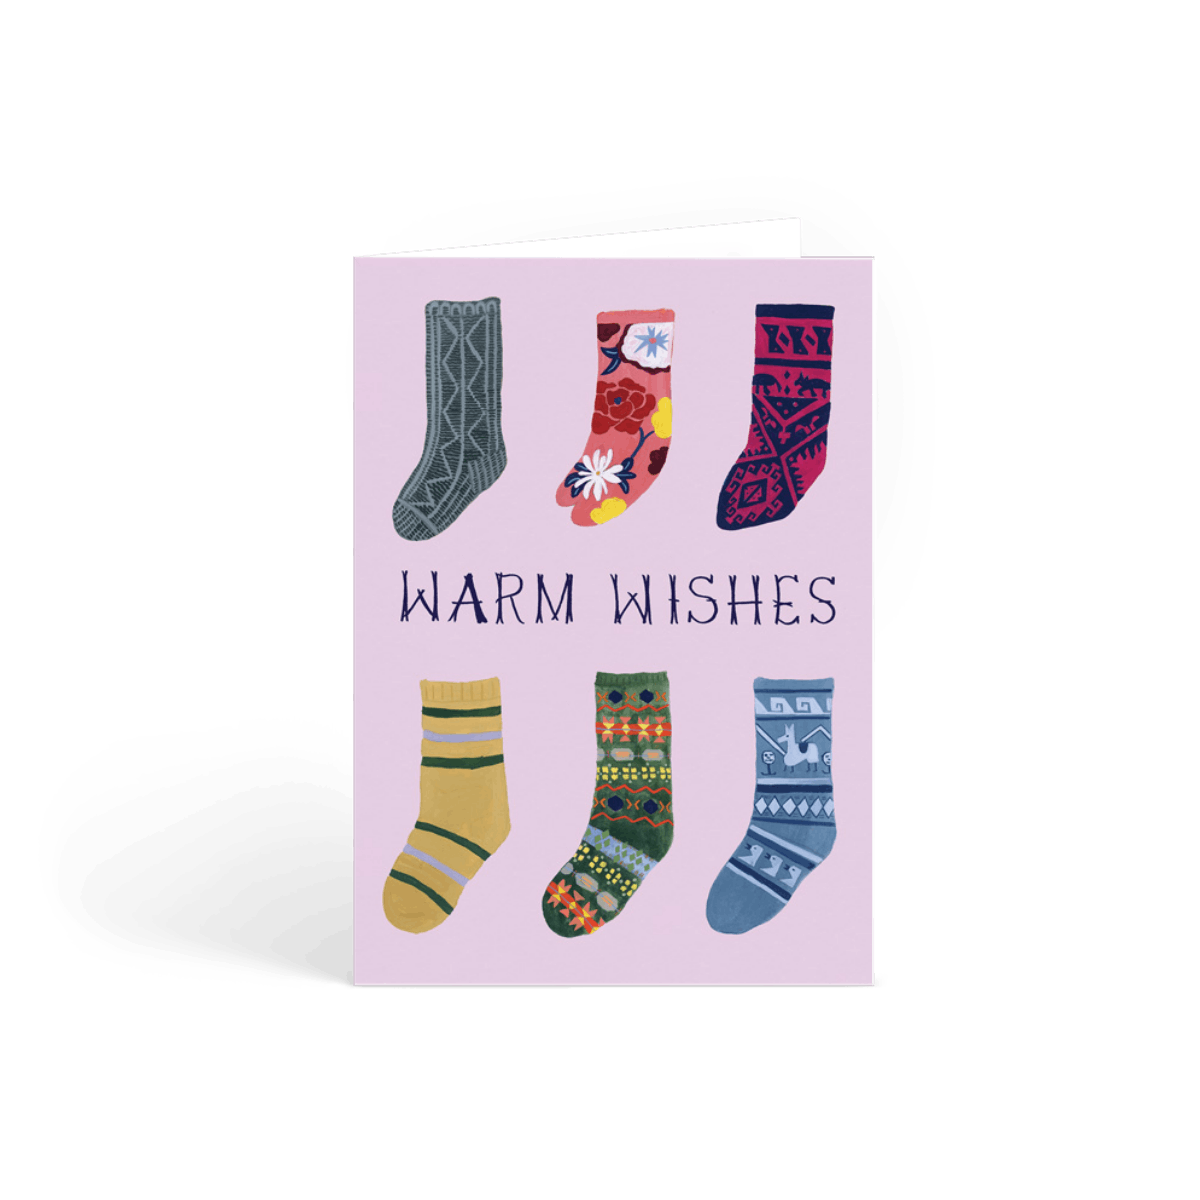 Https%3a%2f%2fwww.papier.com%2fproduct image%2f13222%2f2%2fwarm wishes socks 3354 front 1501749591.png?ixlib=rb 1.1